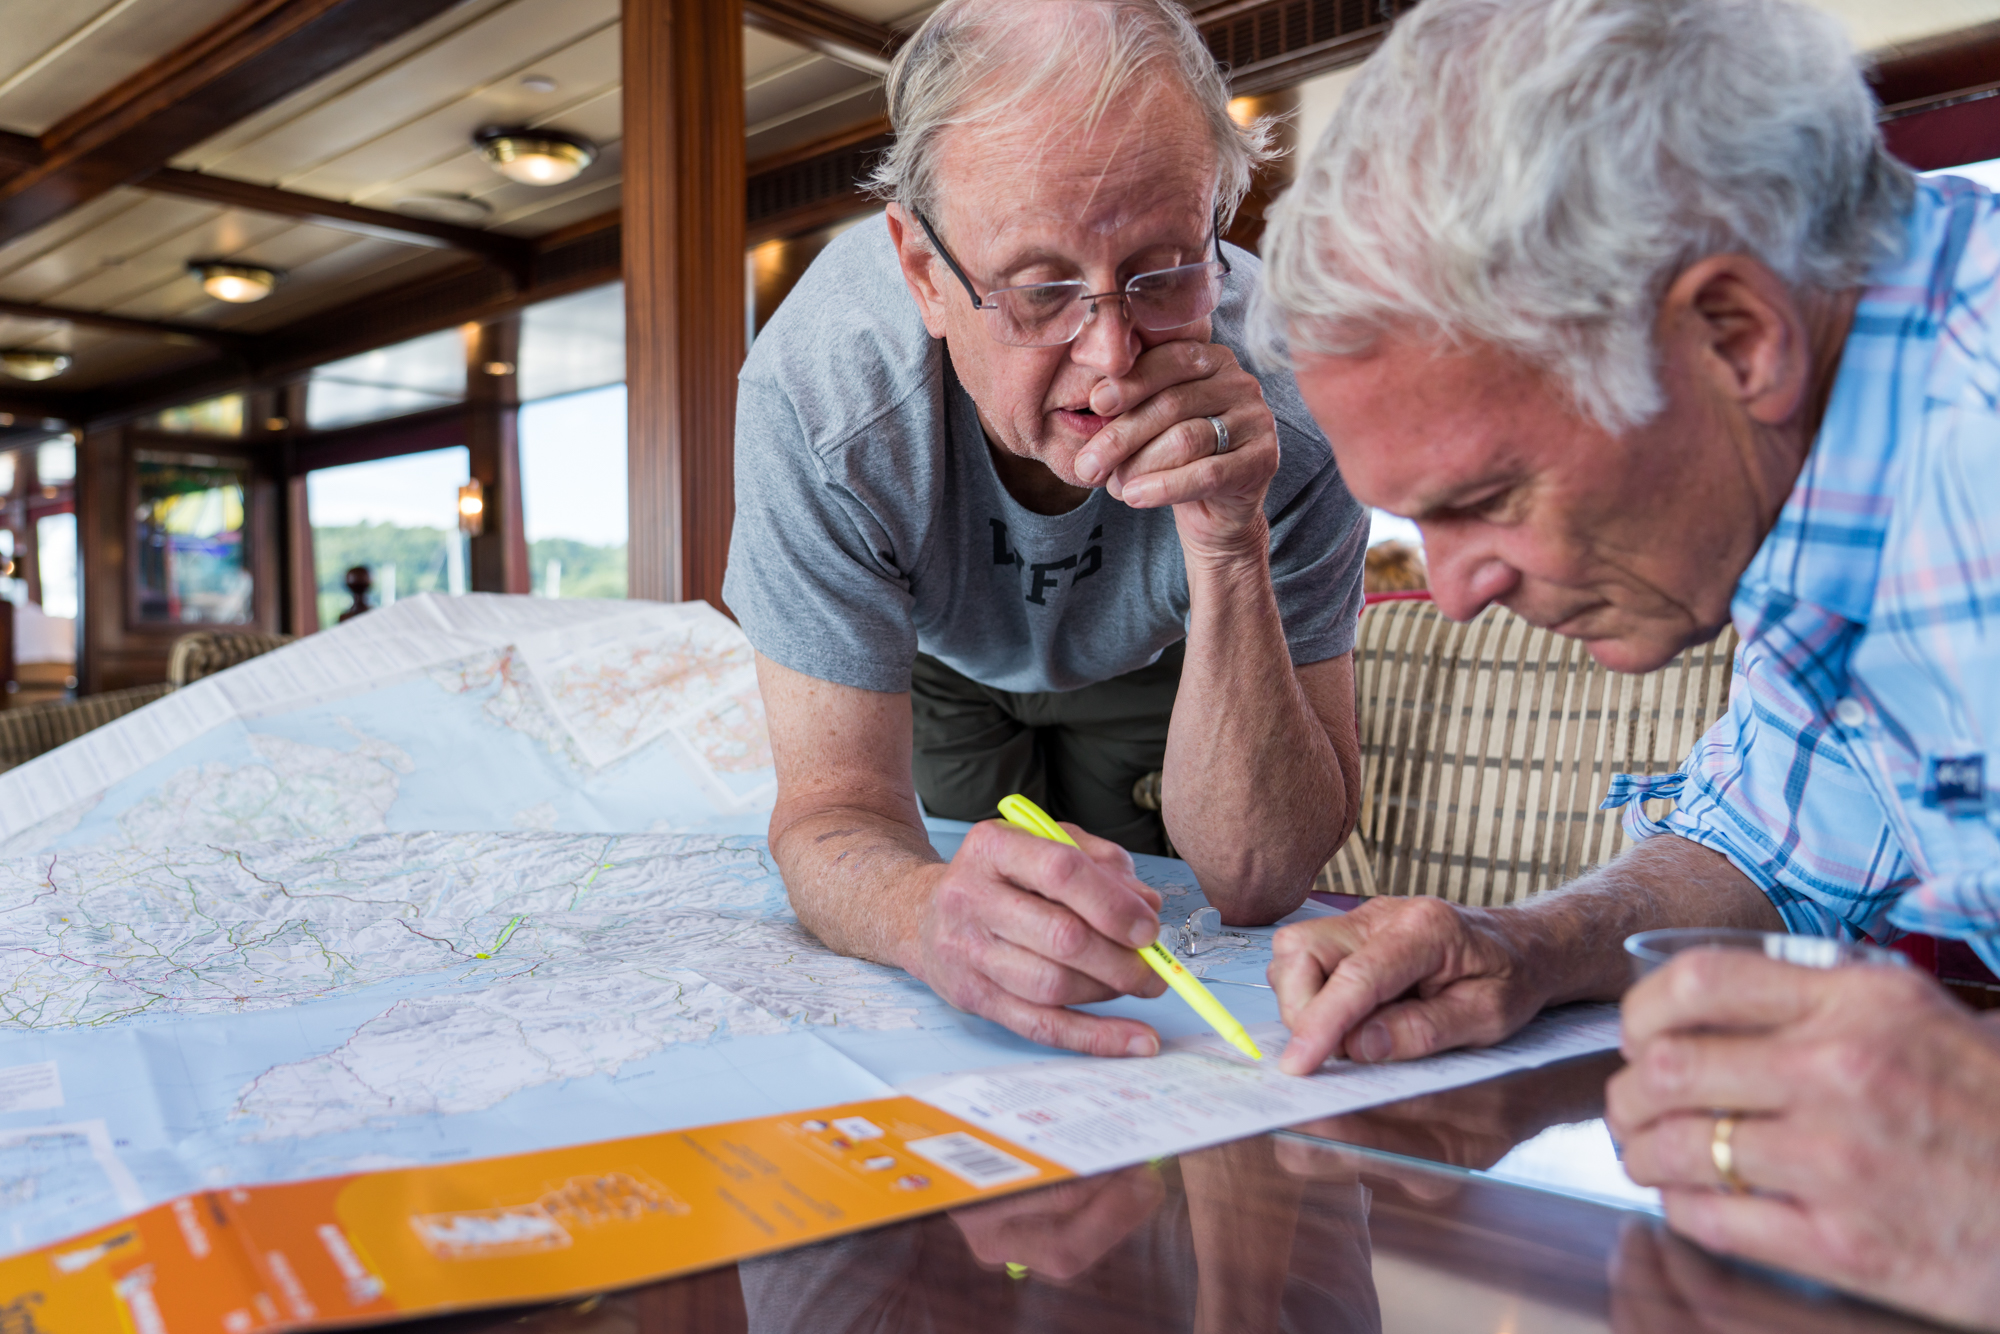 Two guests study the legend on a Scotland map while aboard Lord of the Glens.